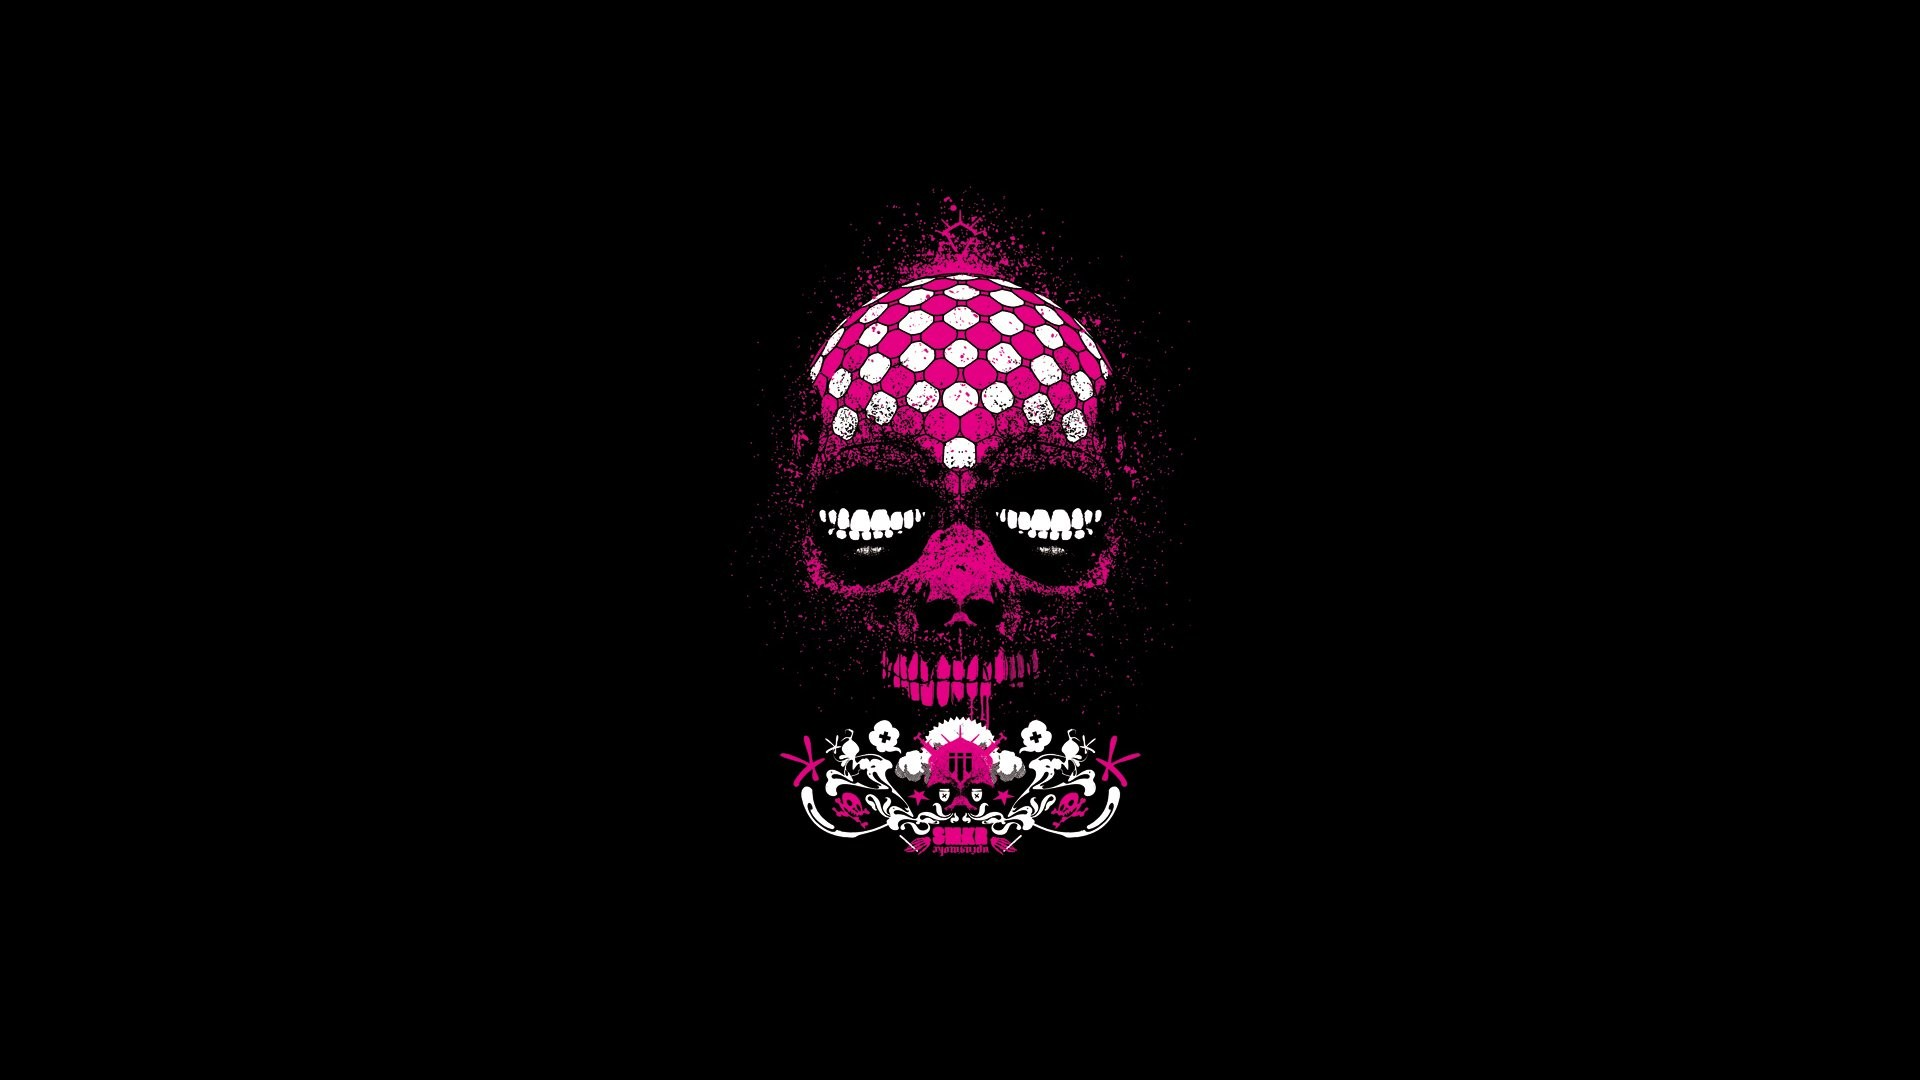 Cute Girly Live Wallpapers For Android Pink Skull Wallpaper 50 Images